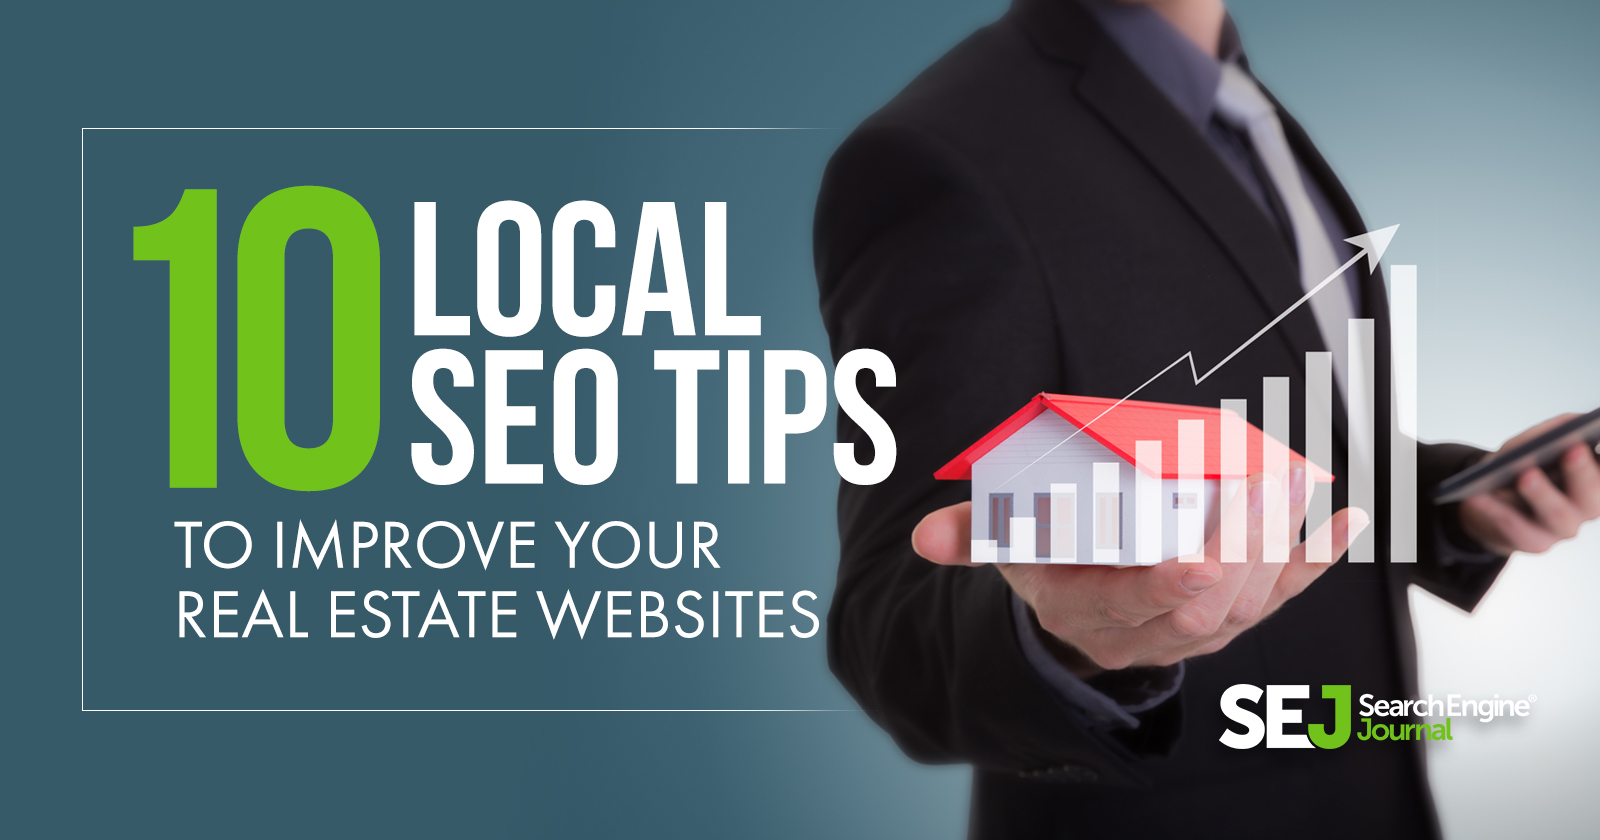 10 Local SEO Tips to Improve Your Real Estate Websites